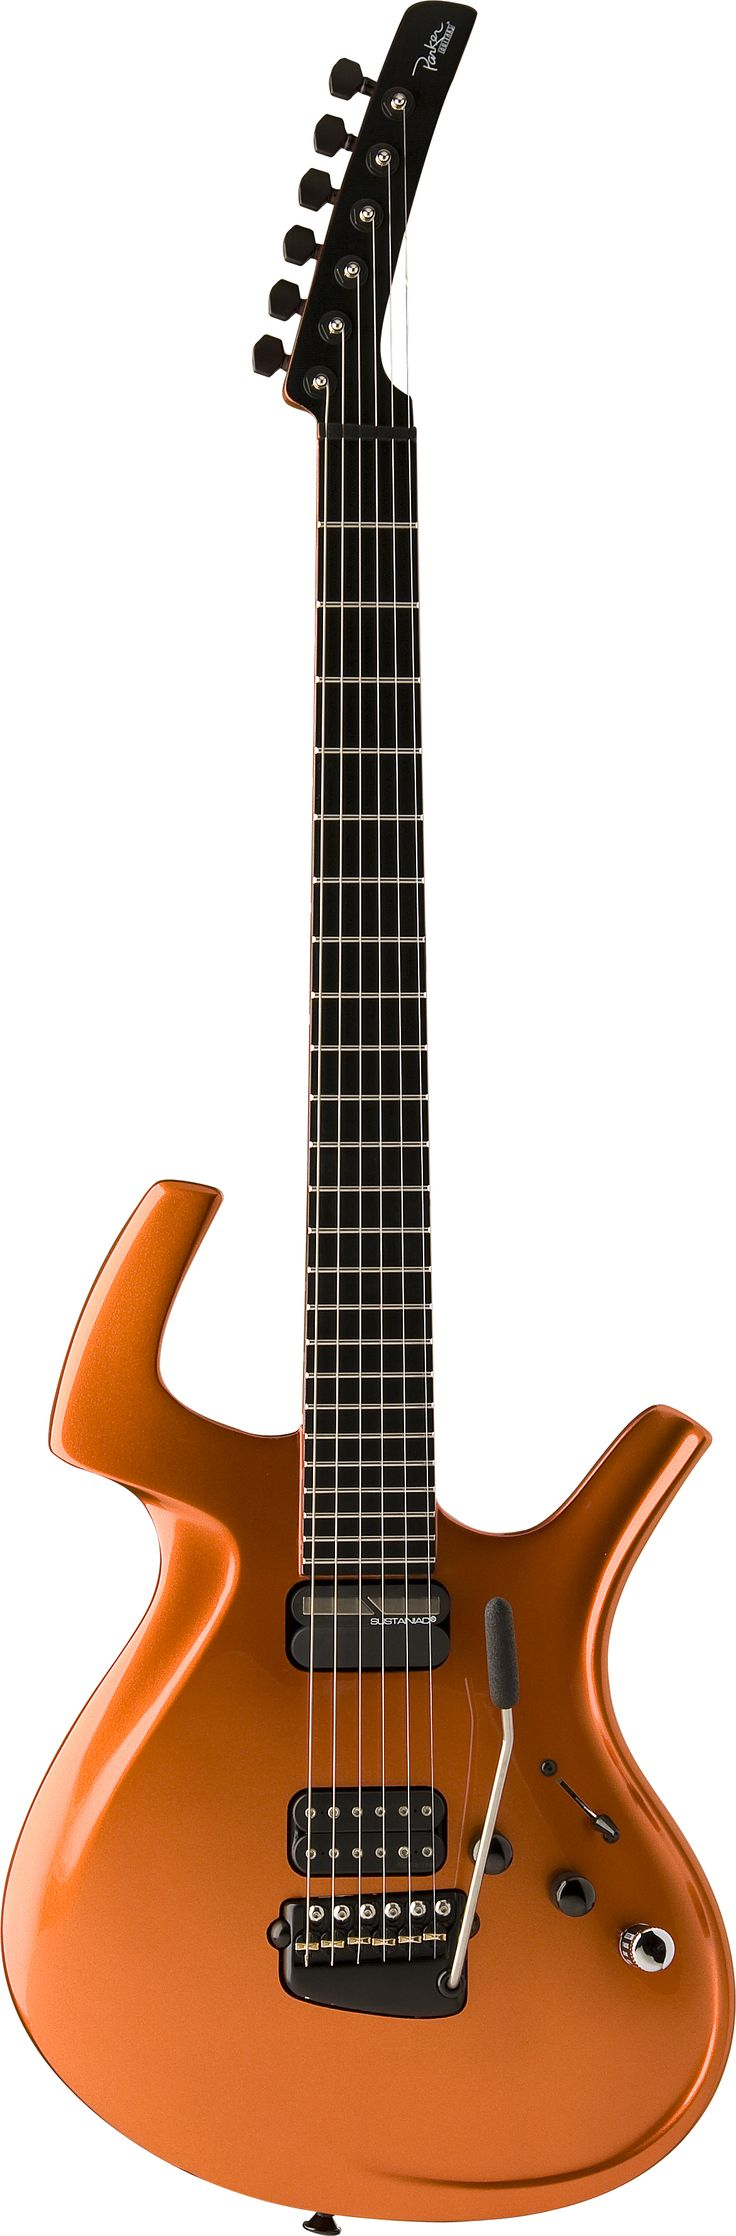 Adrian Belew signature model Parker Fly